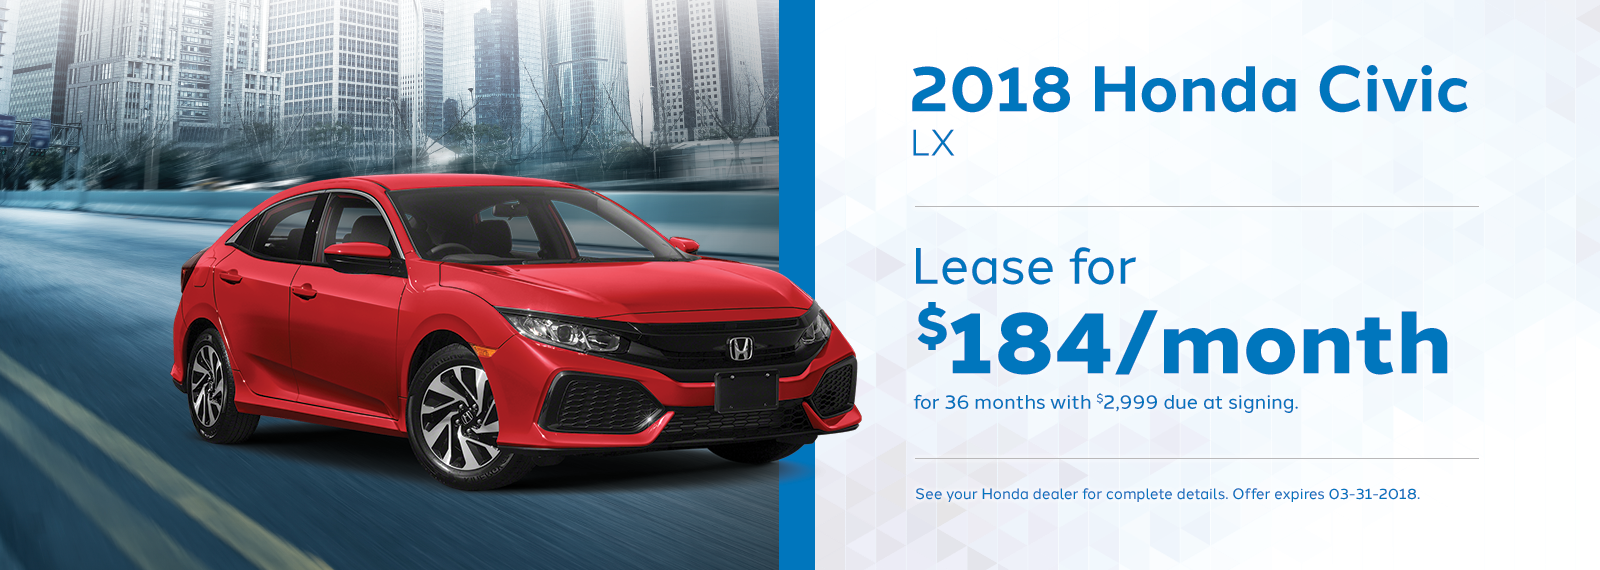 Civic LX March Offer Genthe Honda Homepage